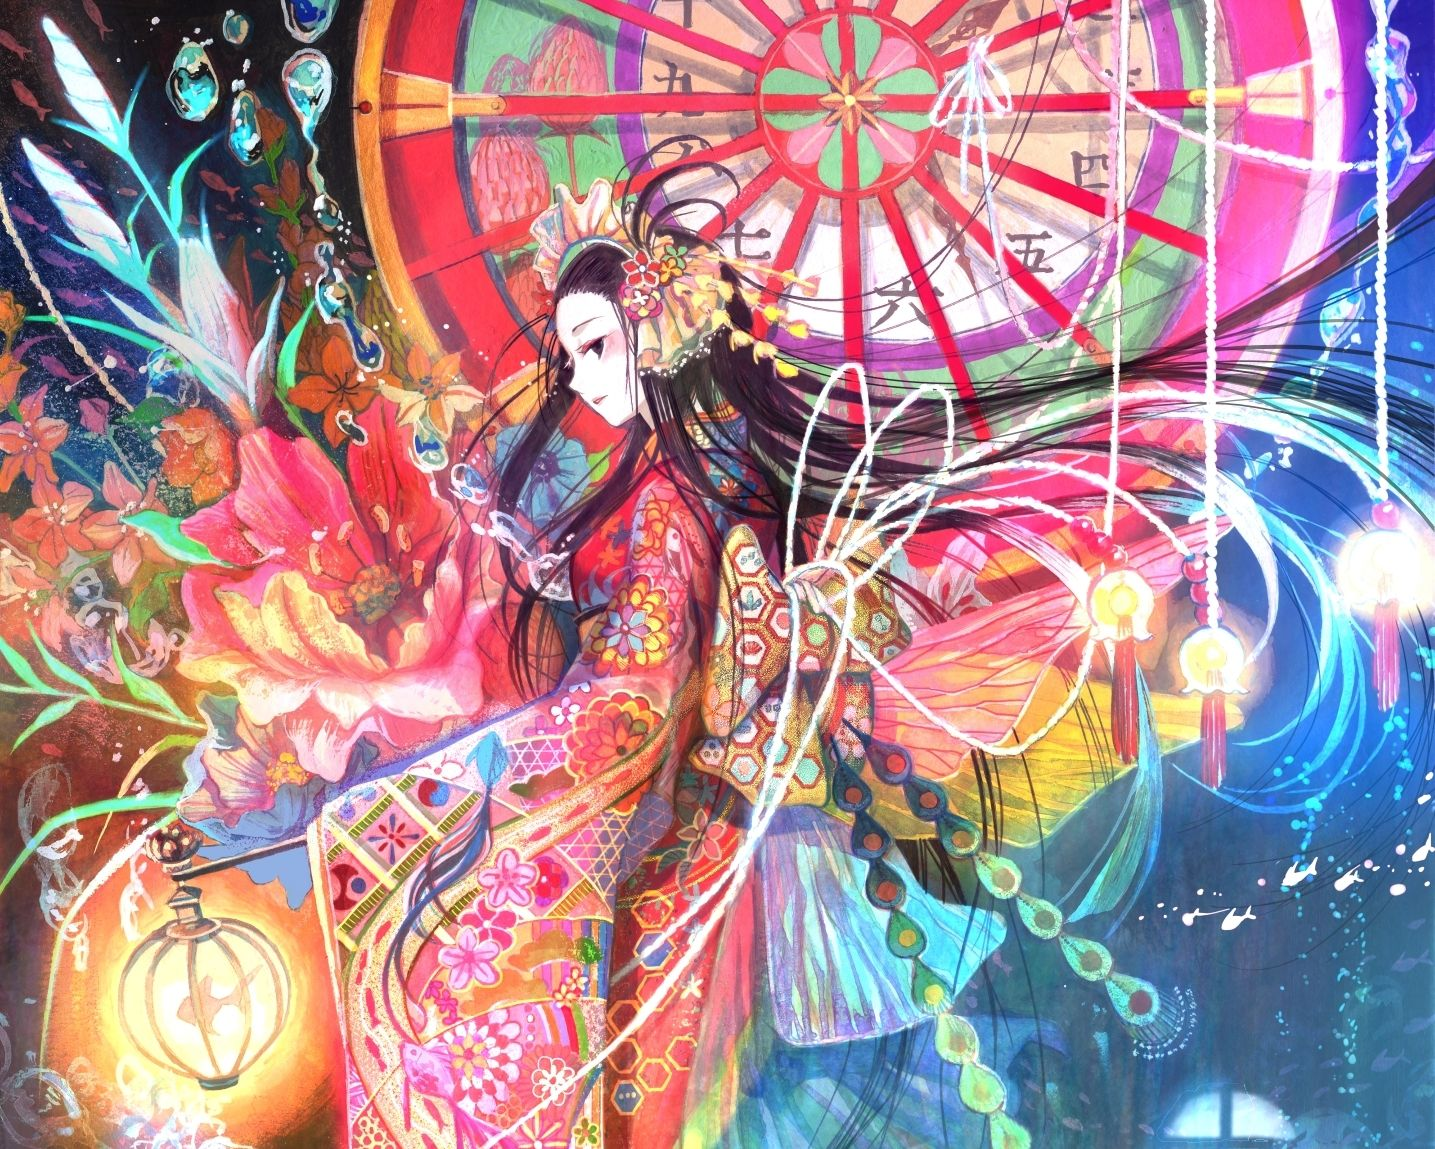 Beautiful Colorful Girls Anime Sakura Wallpaper Princess Kaguya Decending Fuji Choko Japan Is Epic